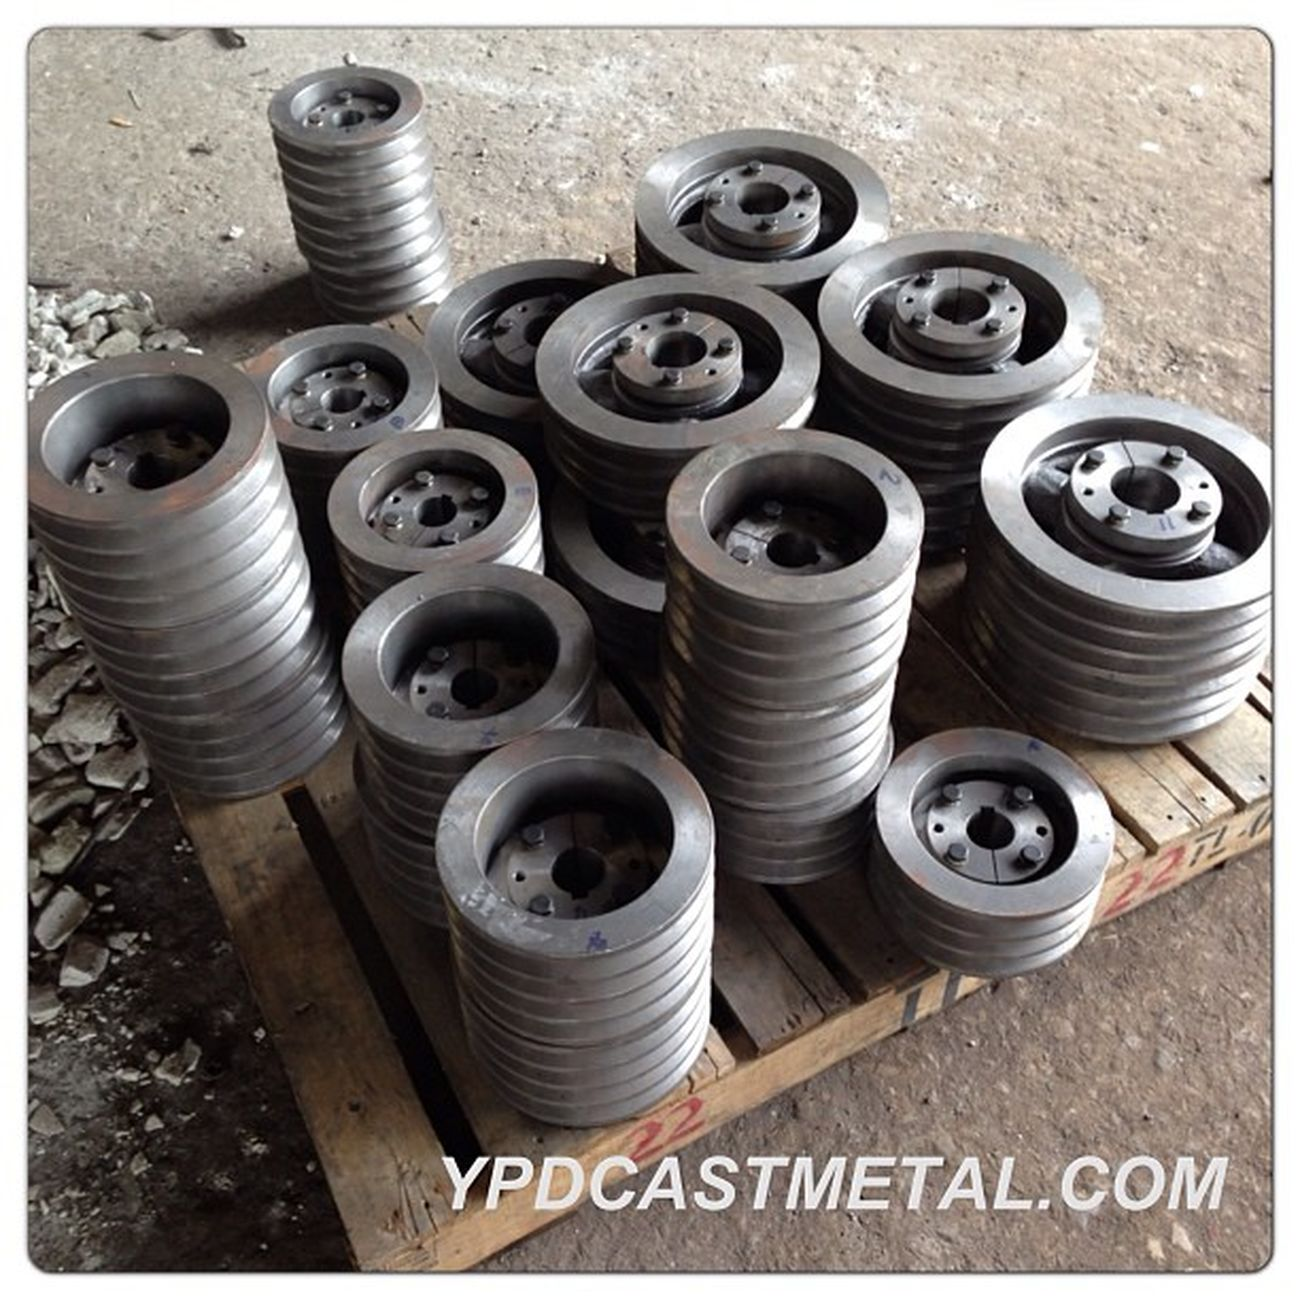 Pulley with taper!! Pulley Taper  Metalwork Metalworking metalsmith steel fc25 ypdcastmetal ricemill